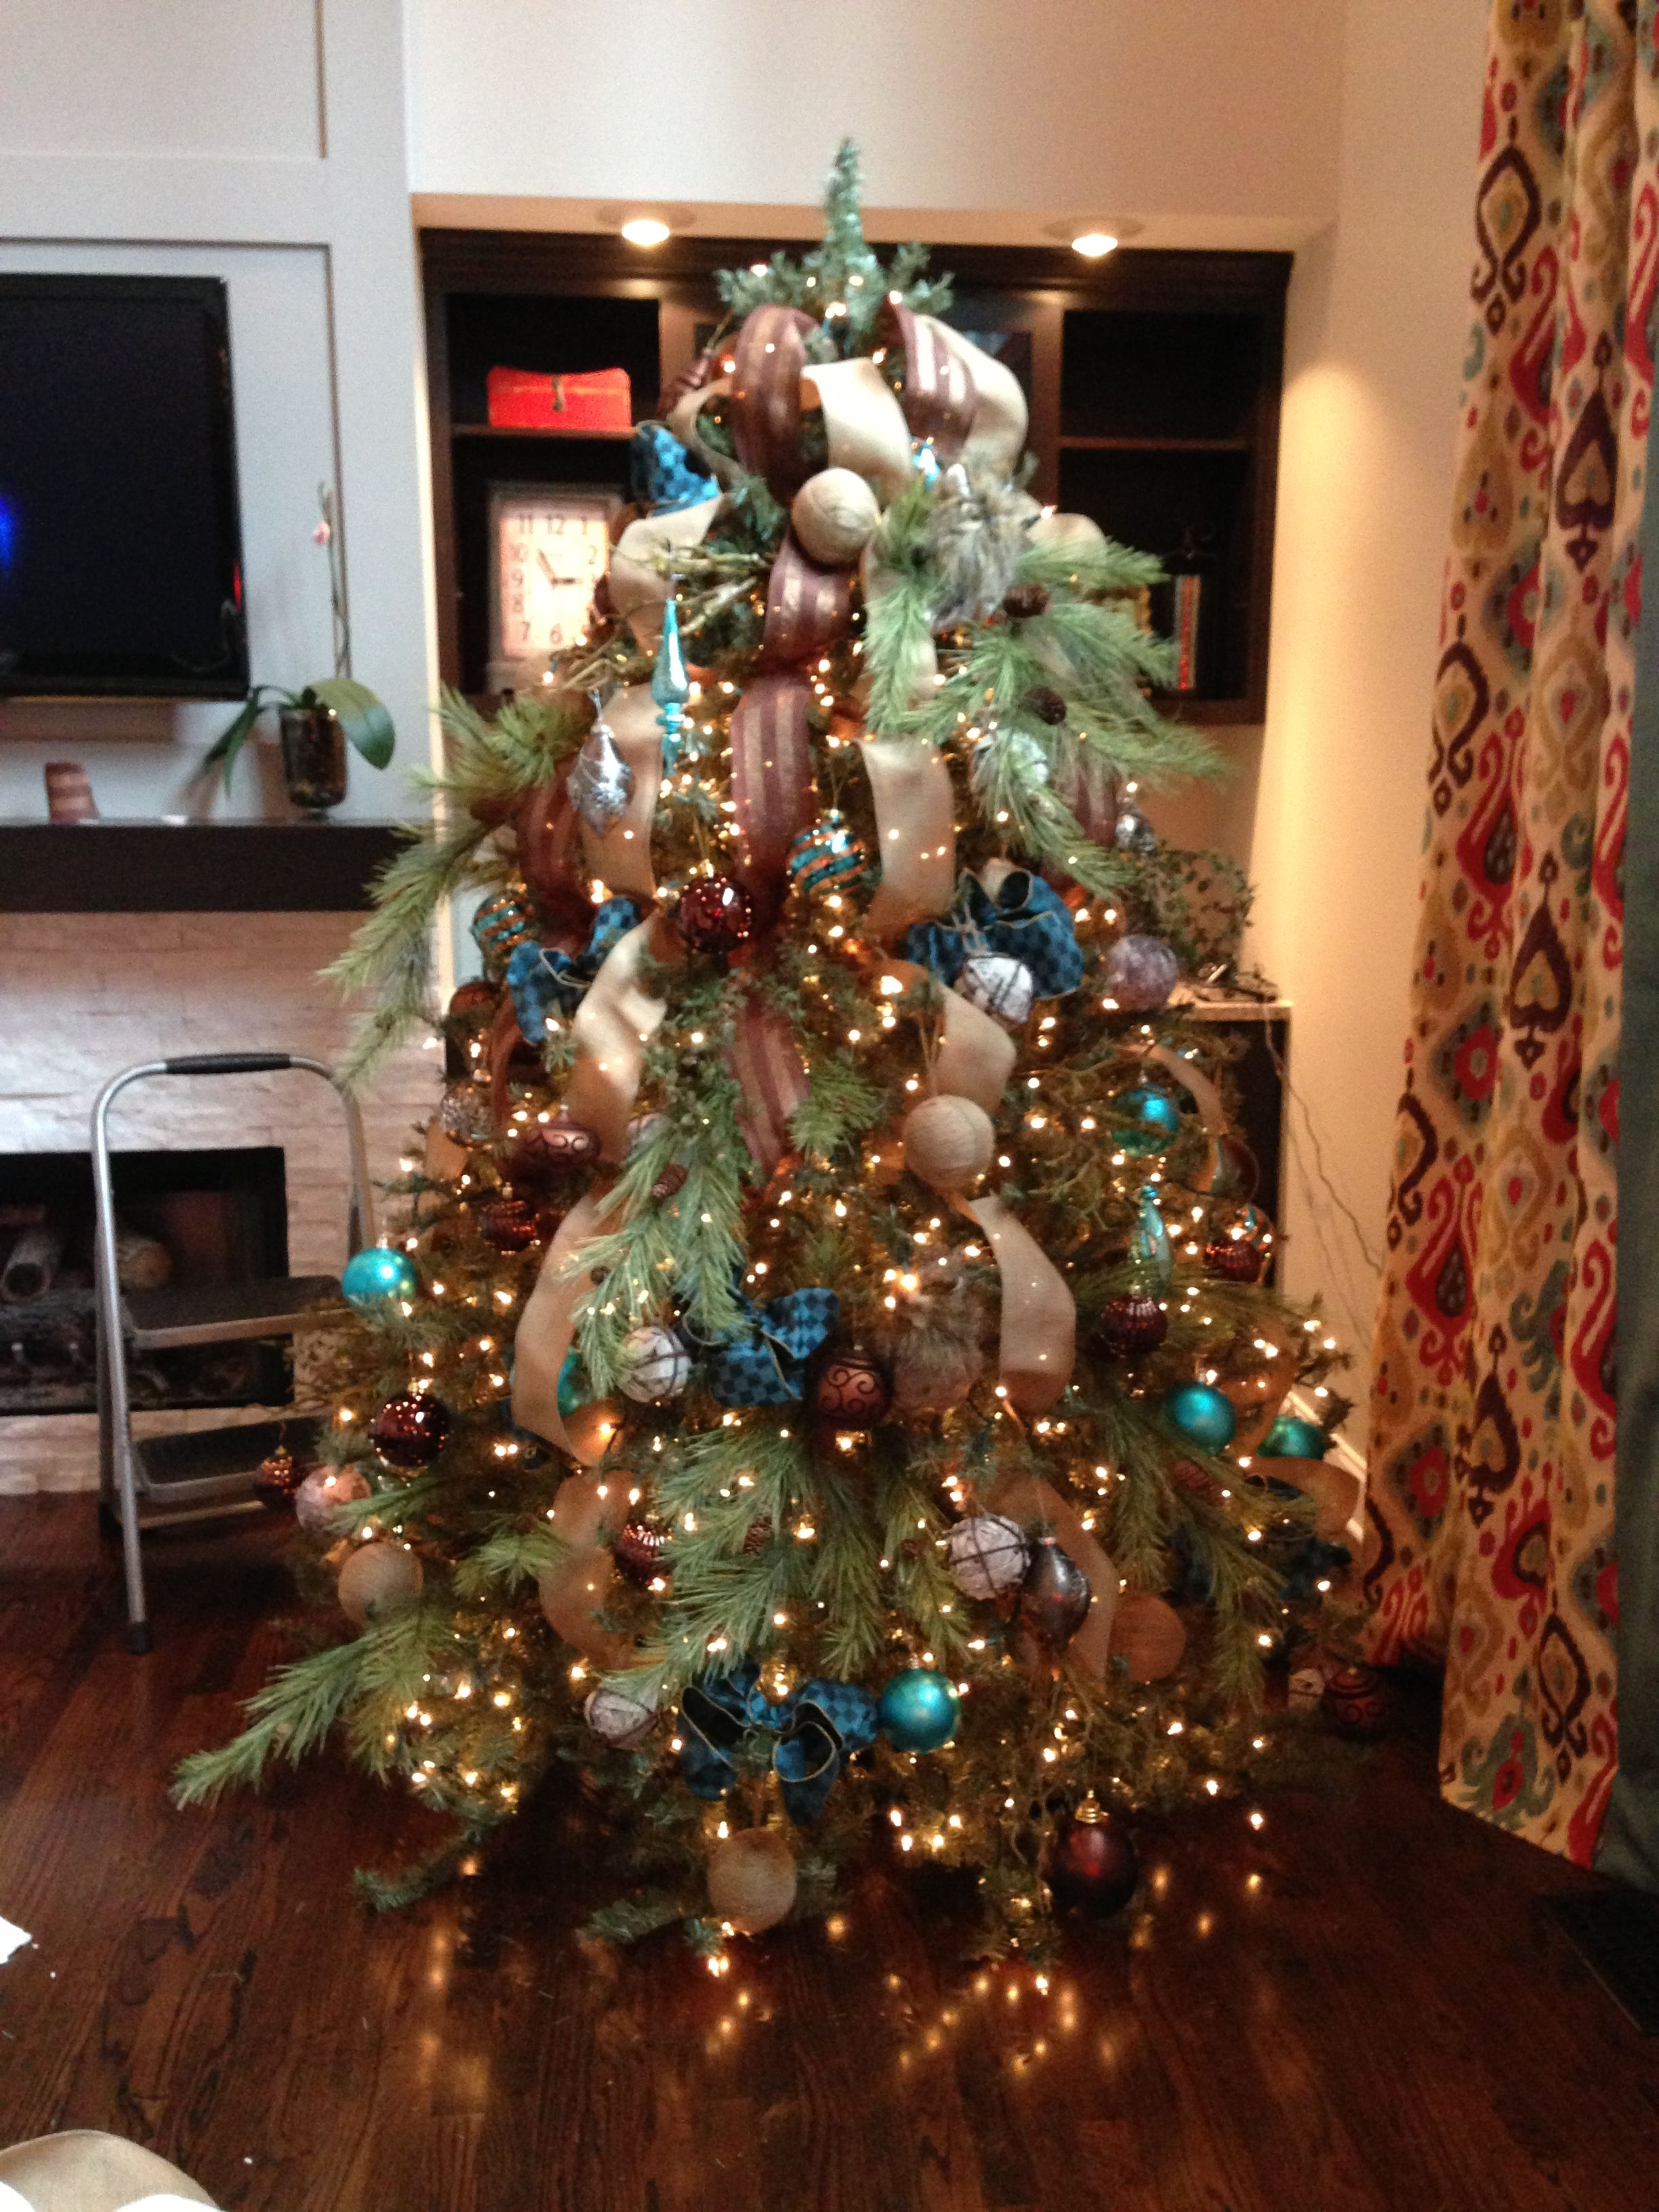 j truan interiors burlap teals browns and natural elements make up this - Christmas Decorating Services